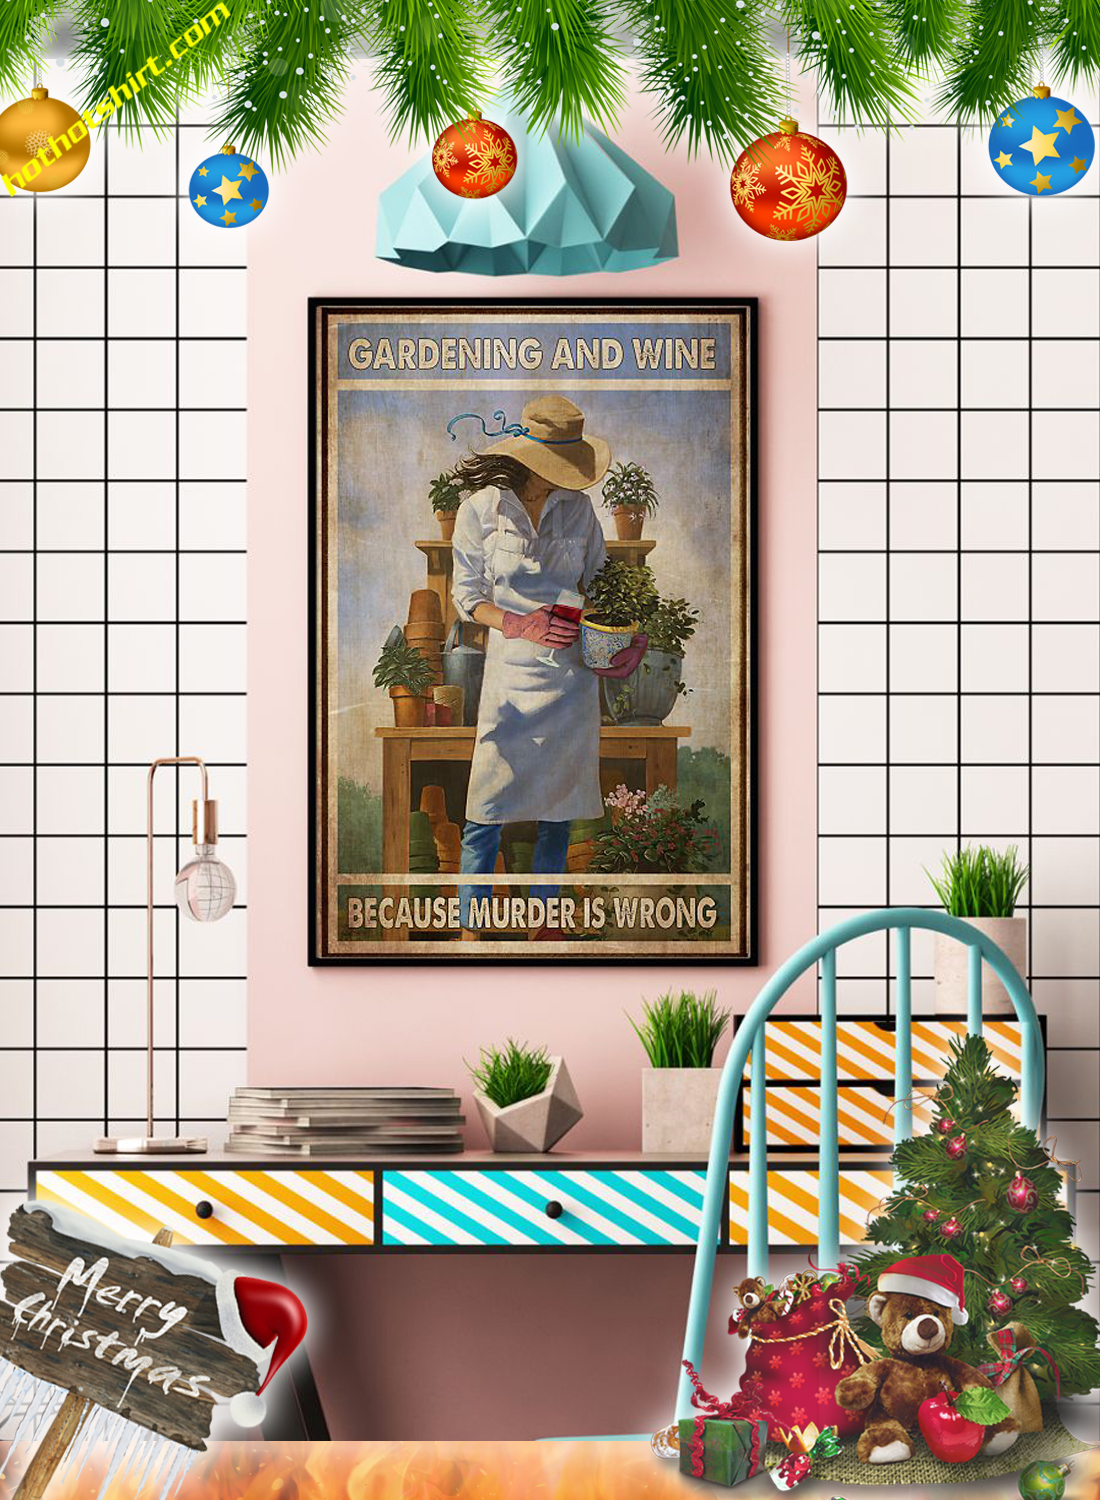 Girl Gardening and wine because murder is wrong poster 3